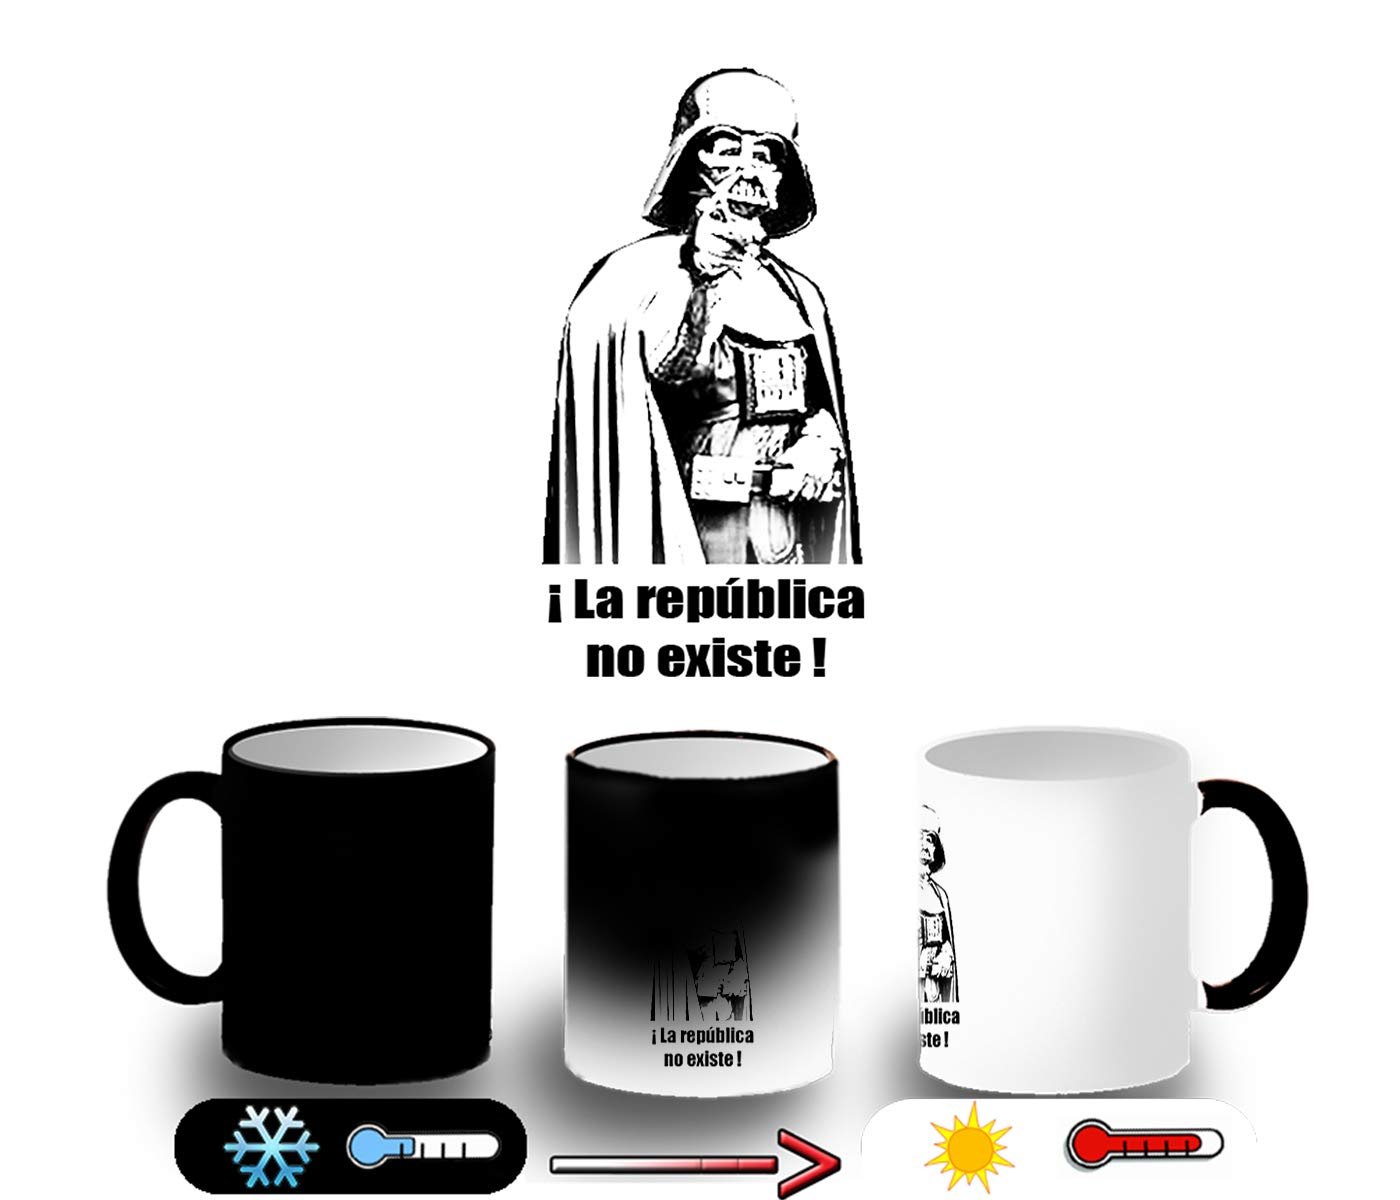 MERCHANDMANIA Taza MÁGICA LA Republica NO Existe ESPAÑA Magic mug: Amazon.es: Deportes y aire libre